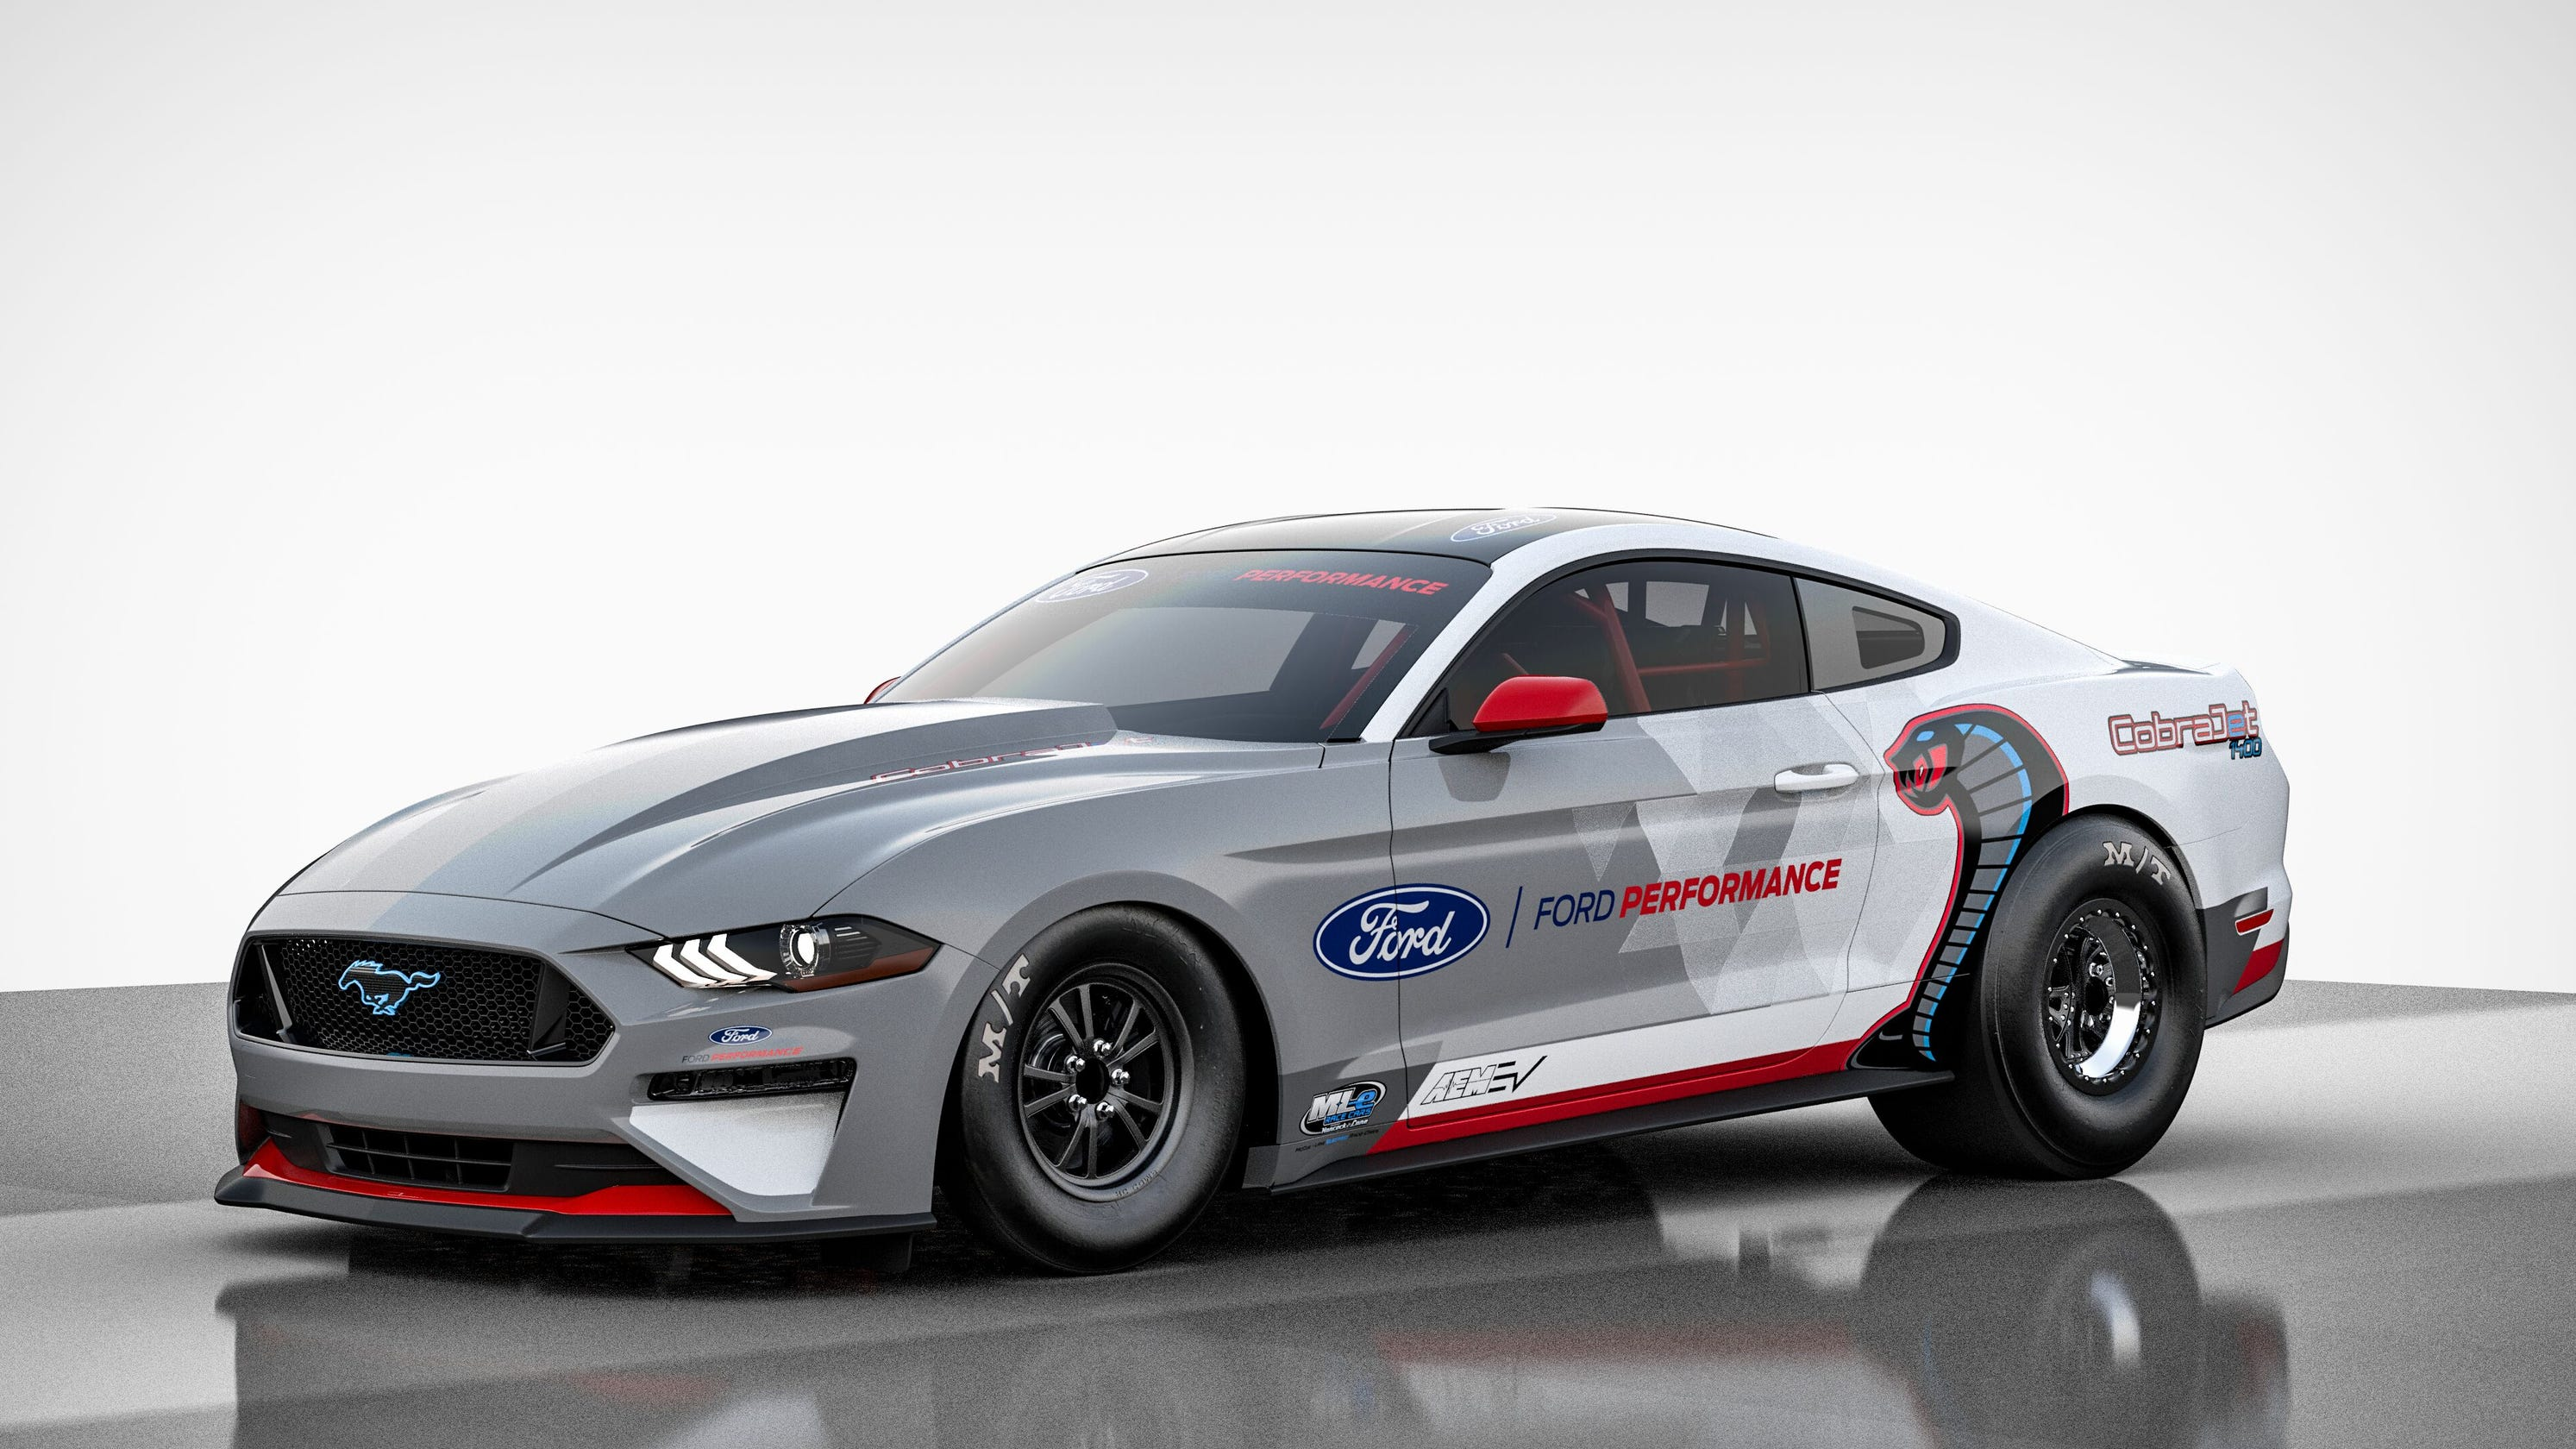 All-electric Ford Mustang Cobra Jet prototype race car hits 170 mph